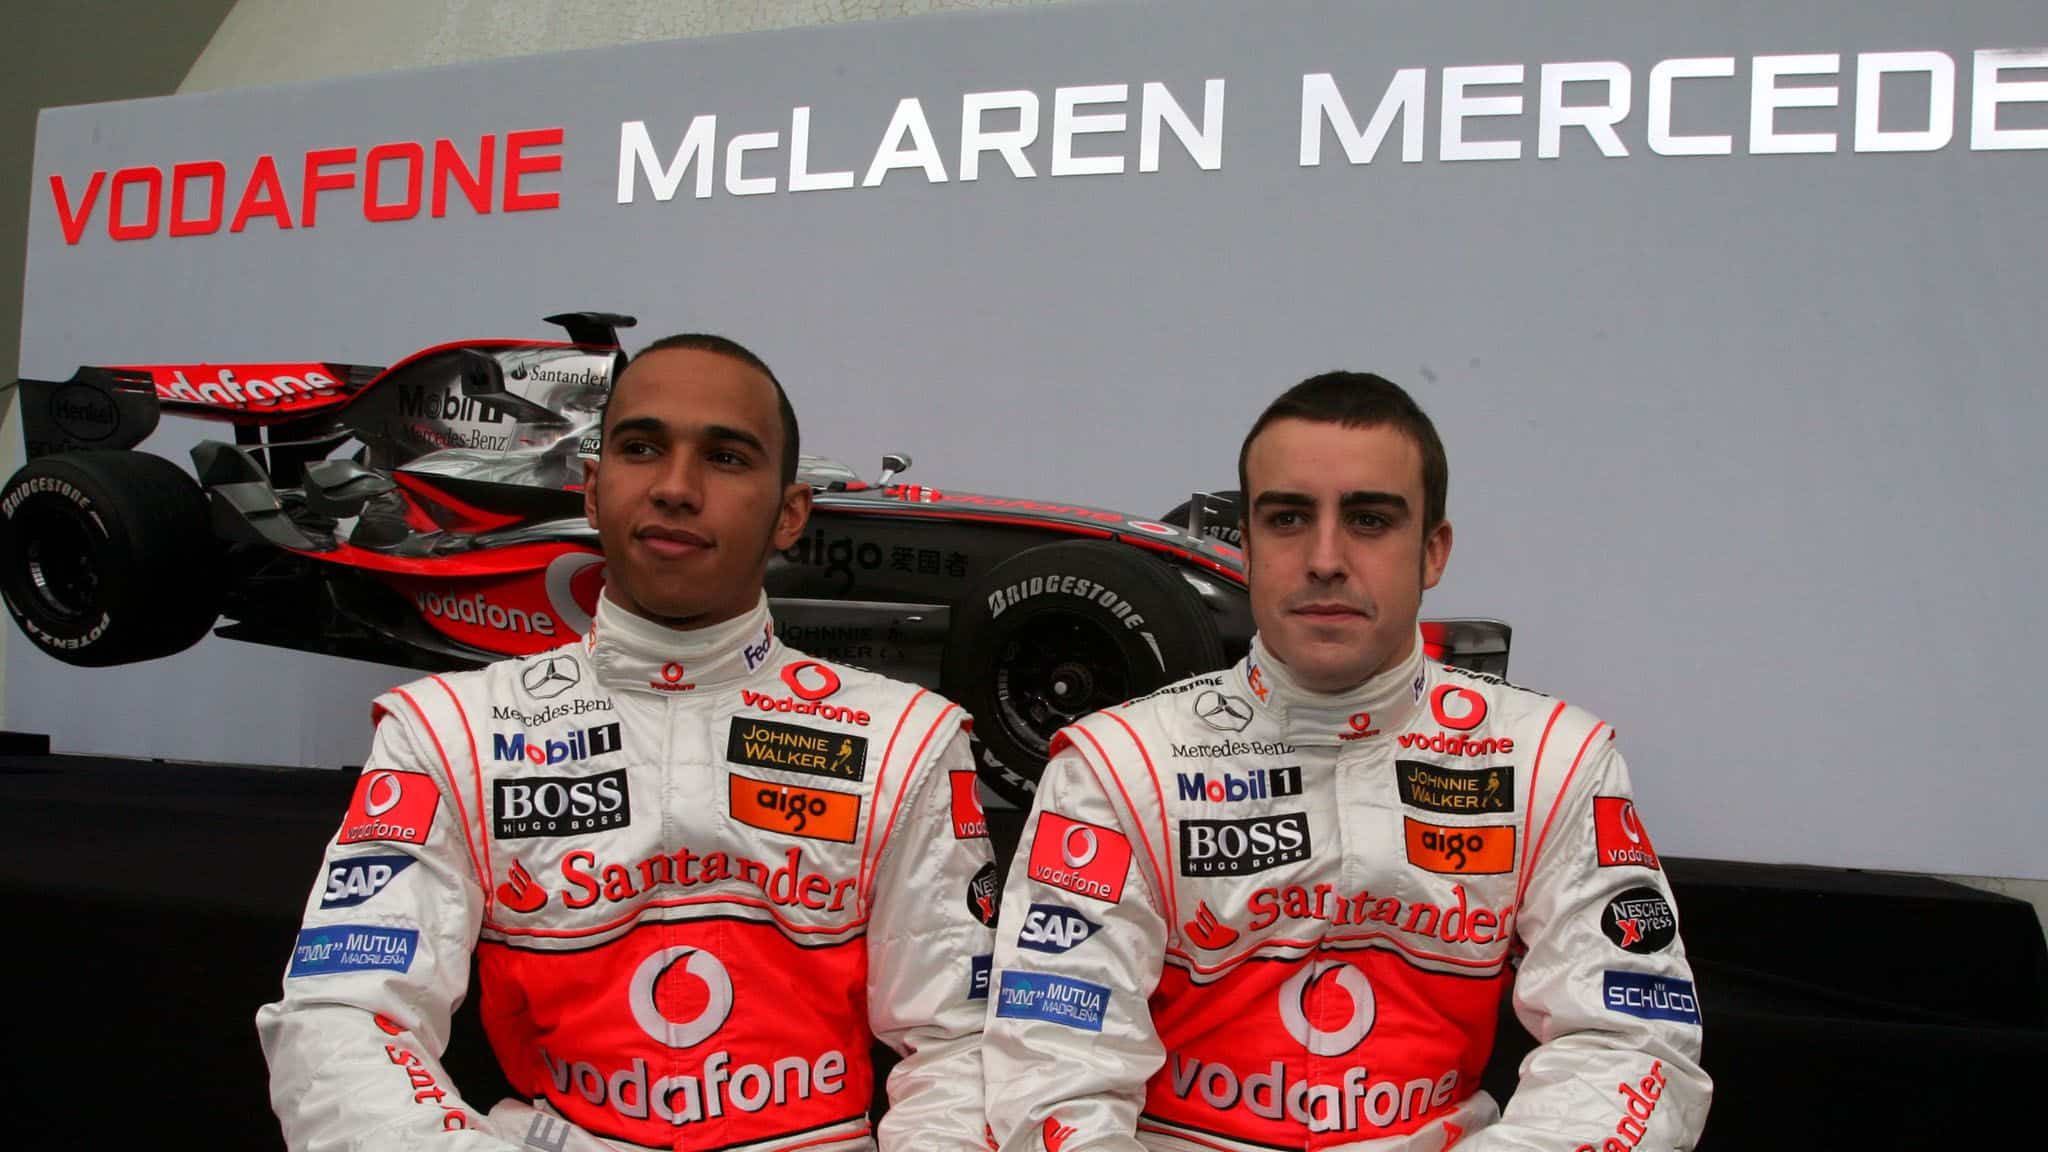 Alonso Had A Torrid Time At Mclaren As Lewis Hamilton Proved To Be A More Than Competitive Teammate